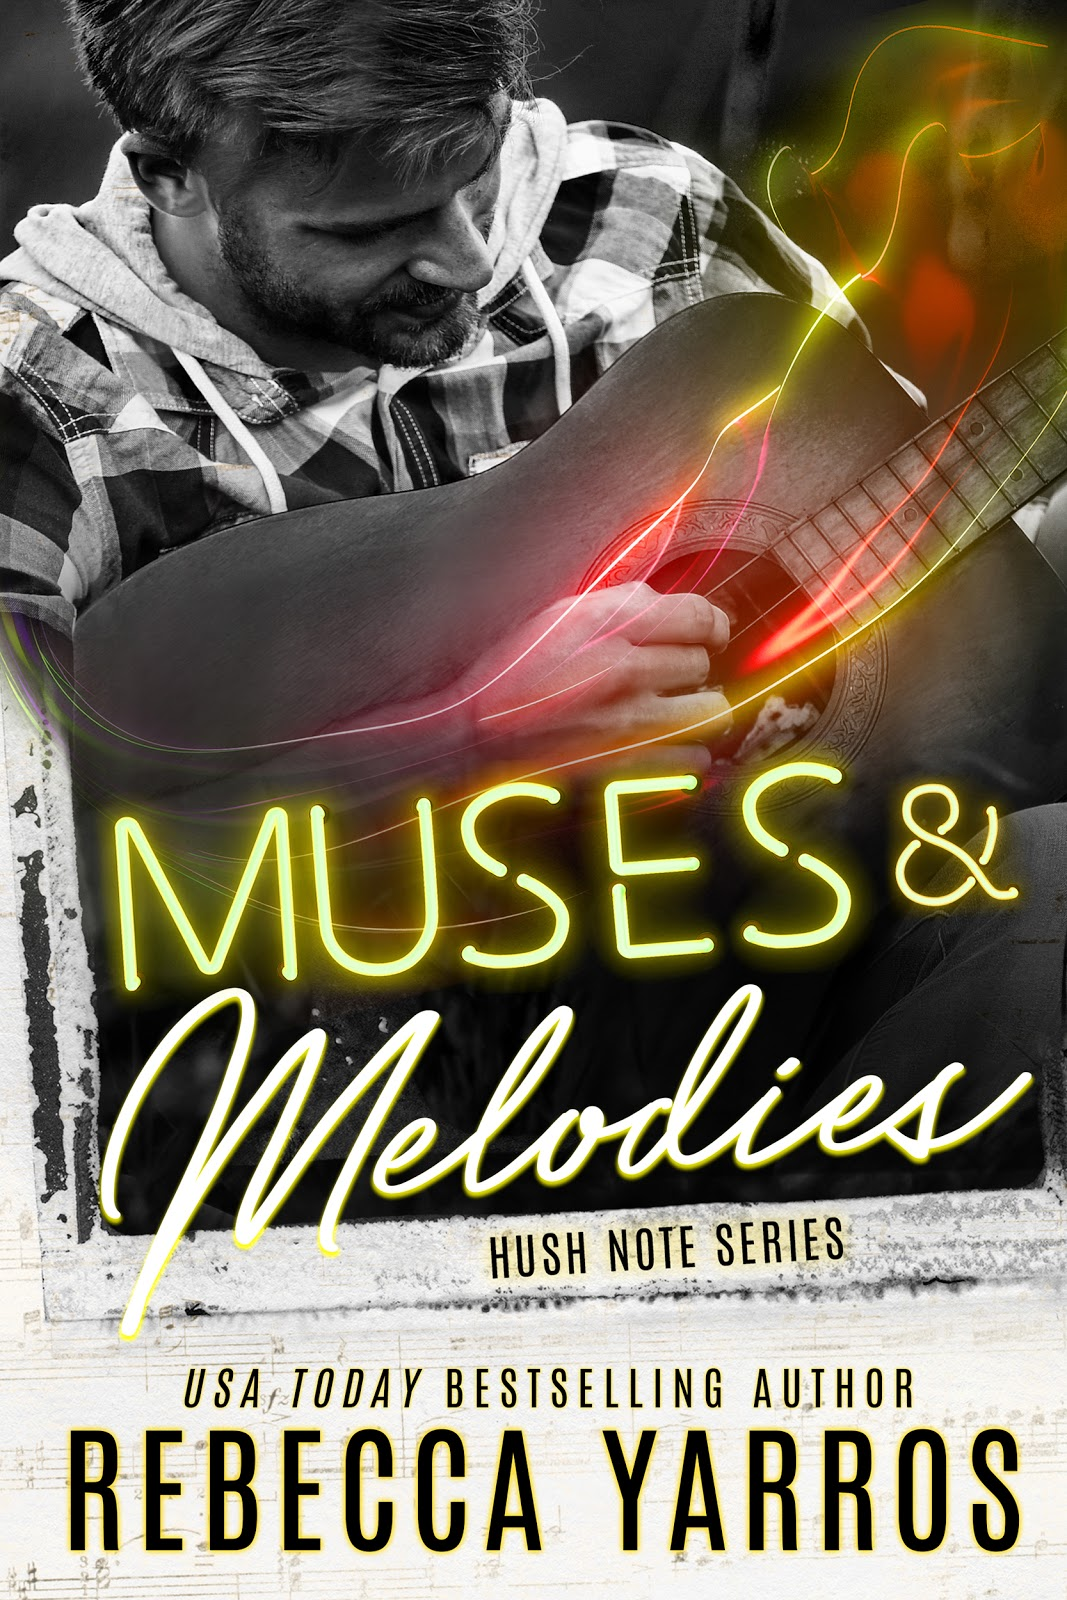 Muses & Melodies by Rebecca Yarros